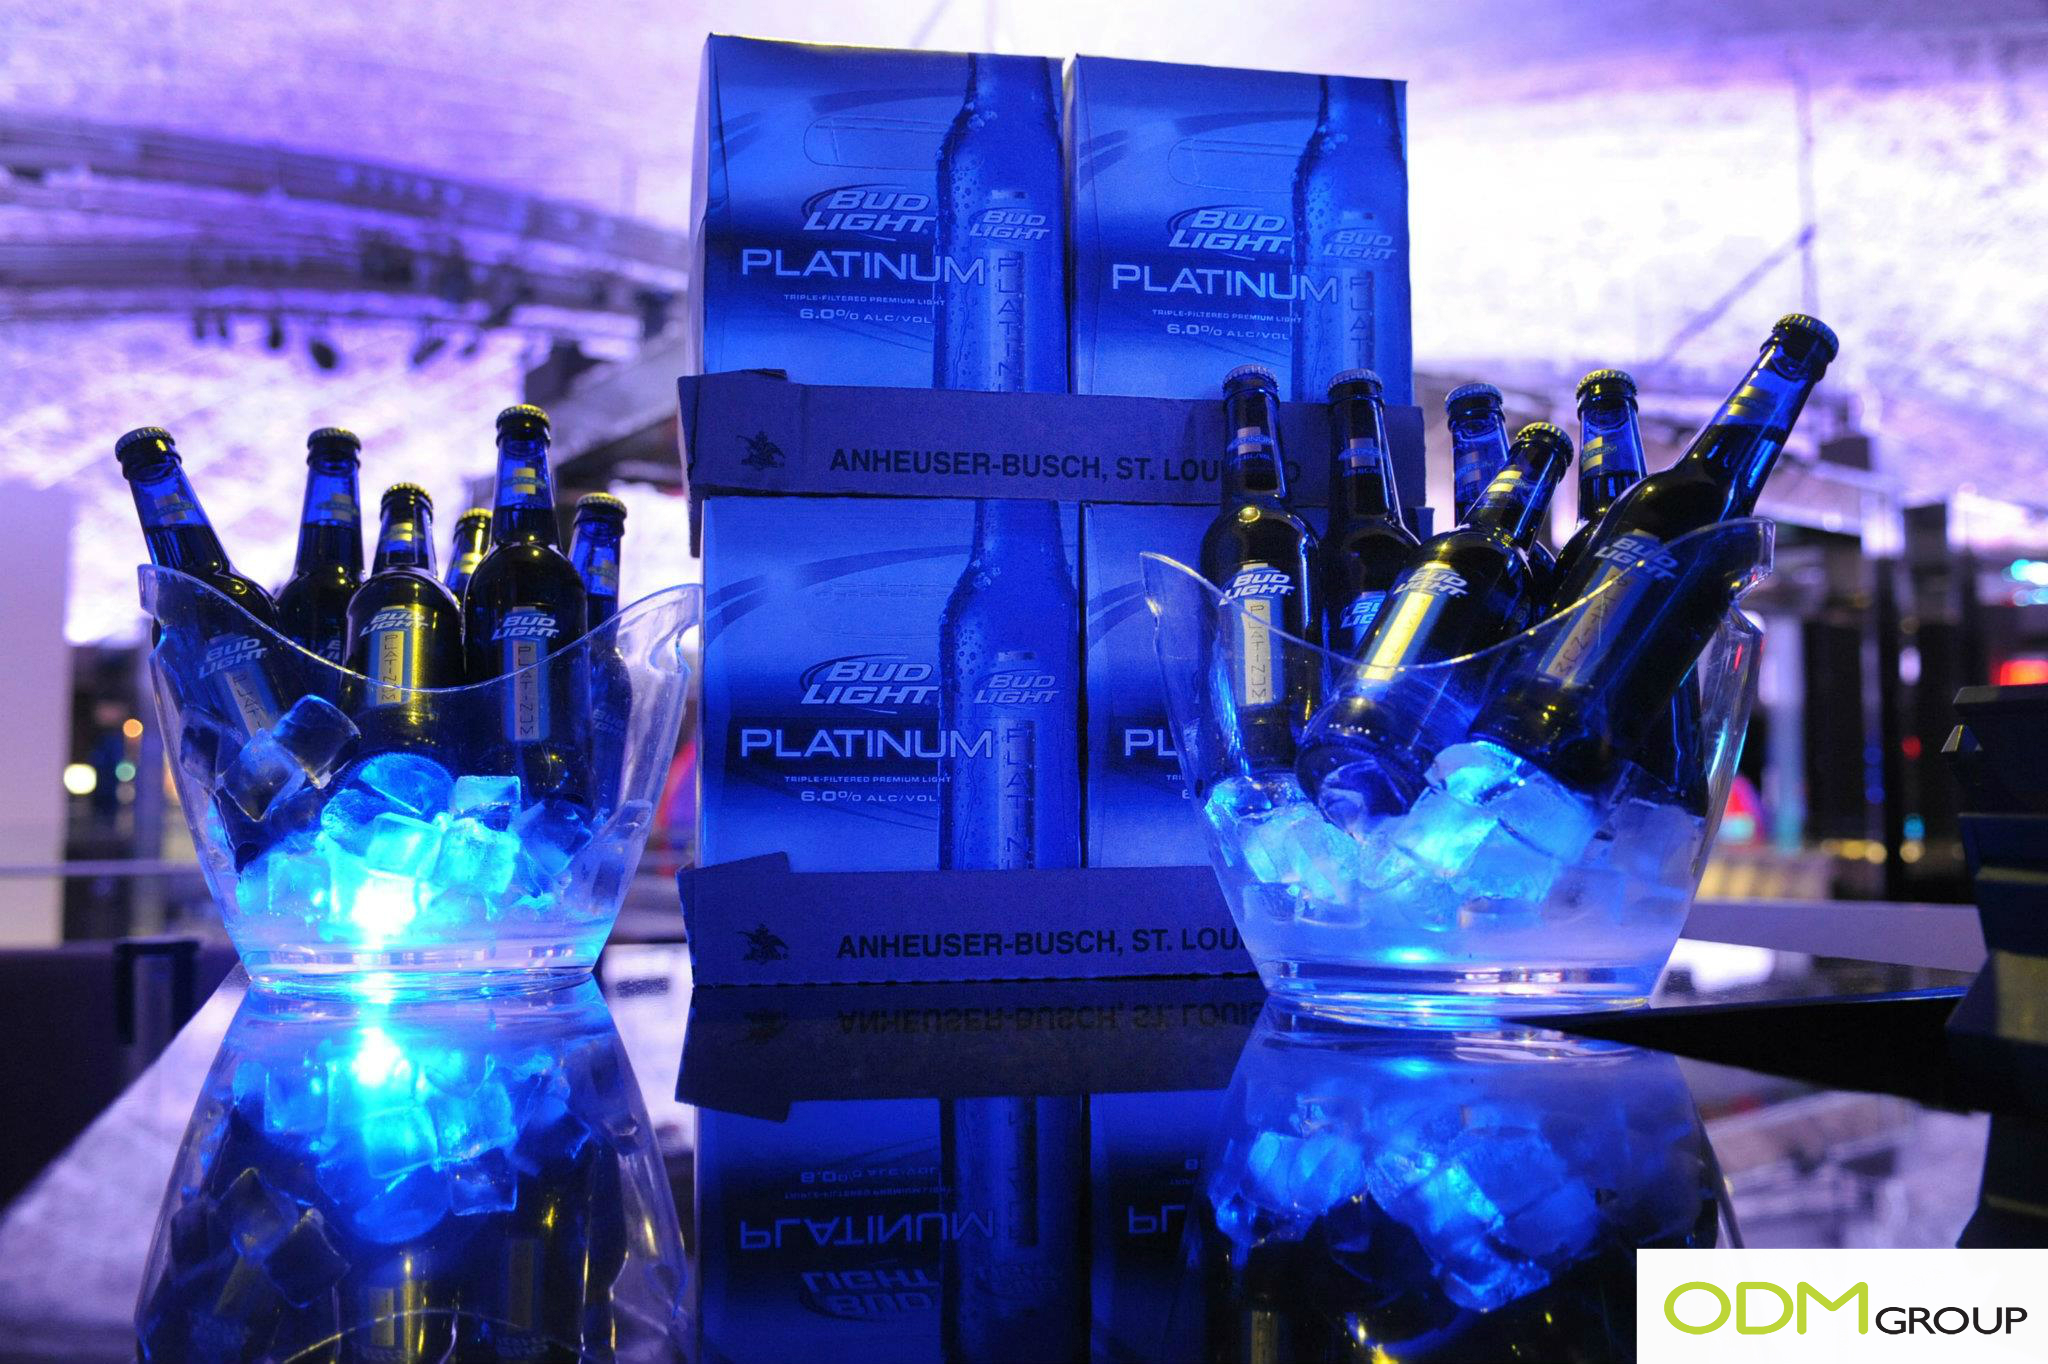 Bud11 Bud Platinum Cool Live Promotion